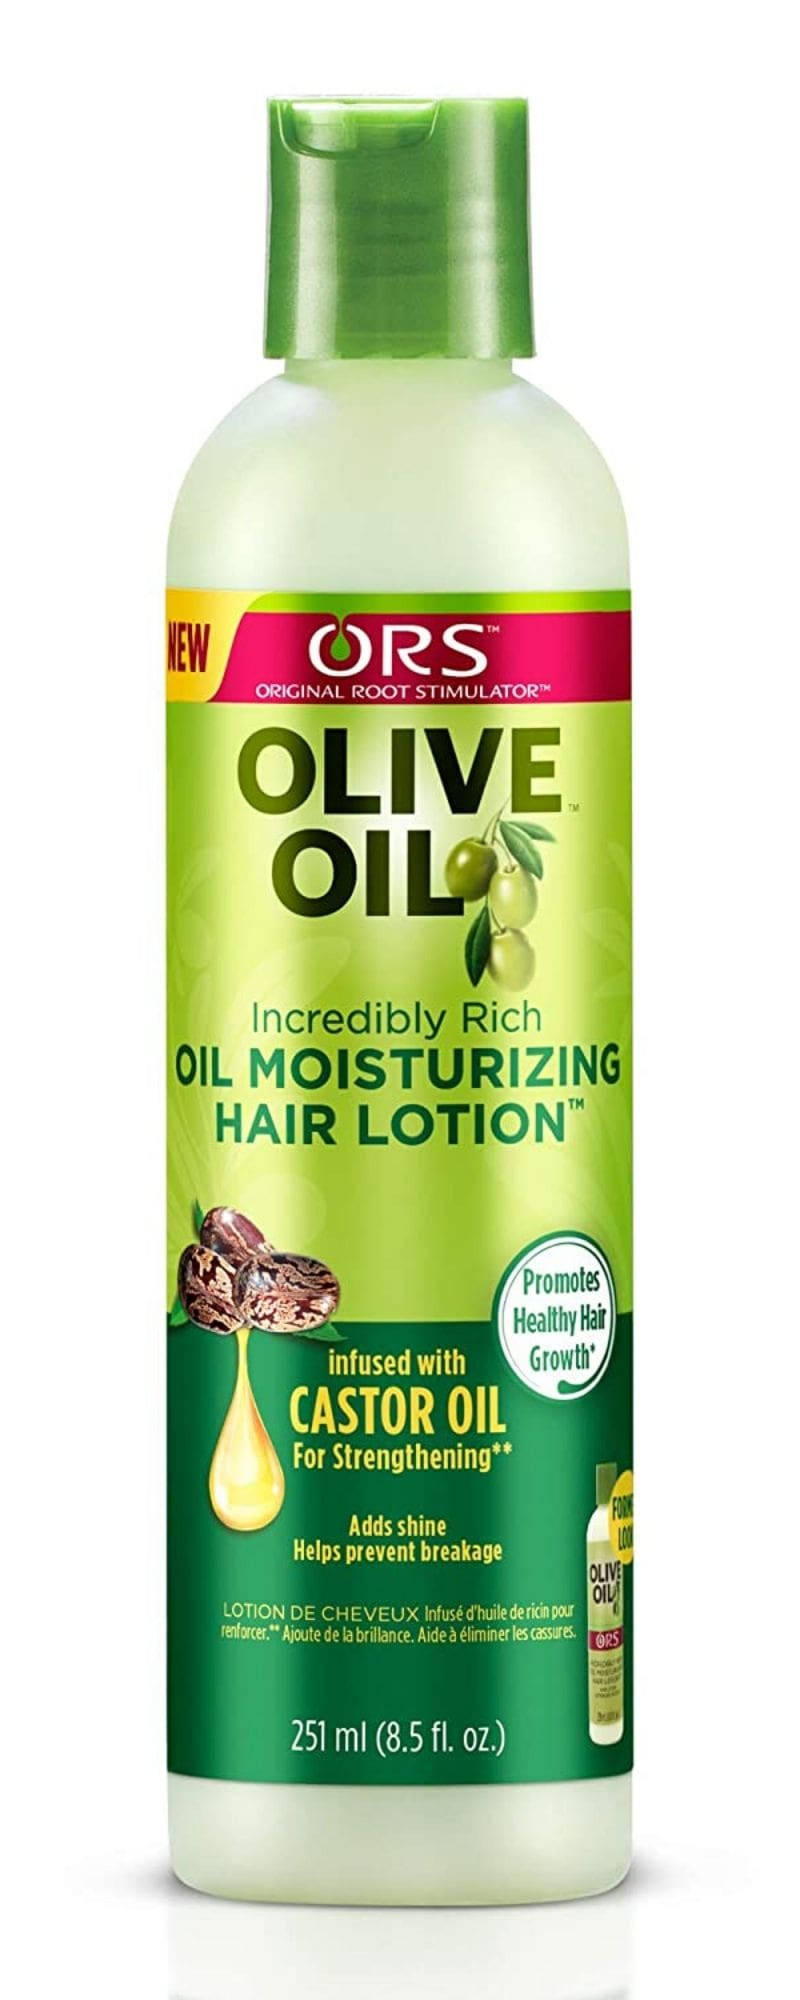 leaving olive oil in hair for days: right or wrong?